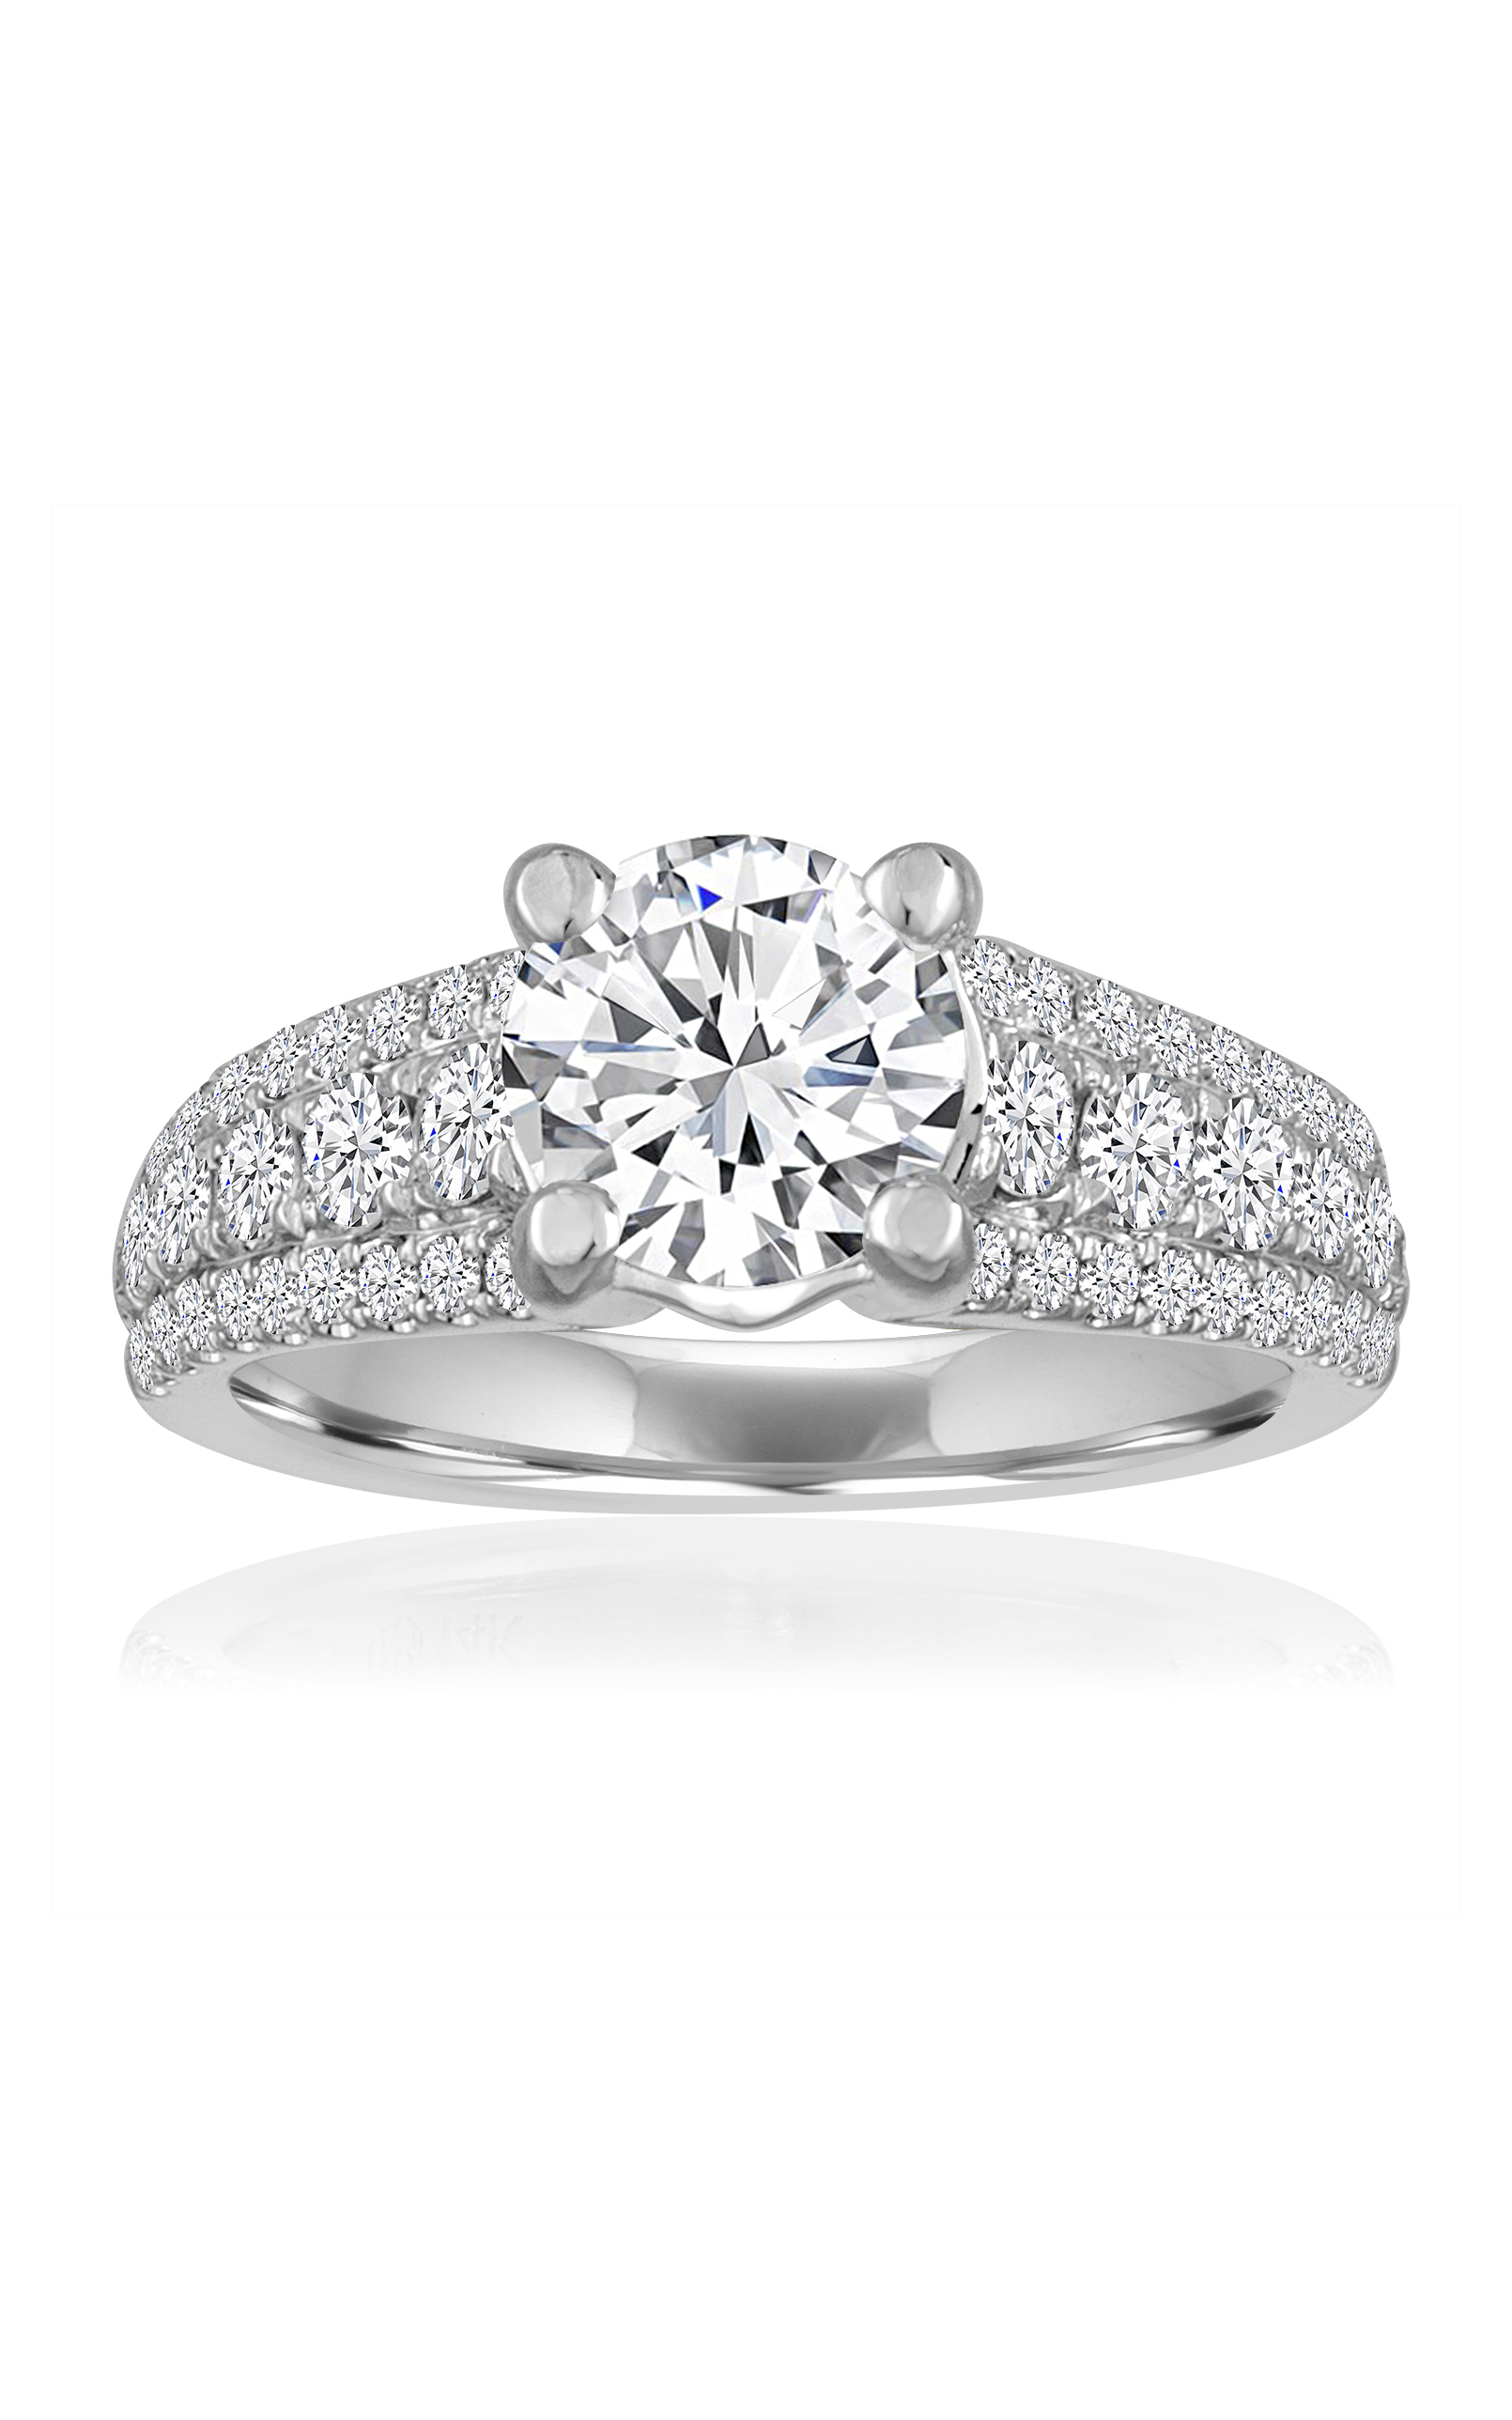 rings wiki etiquette engagement diamondrings bridal ring